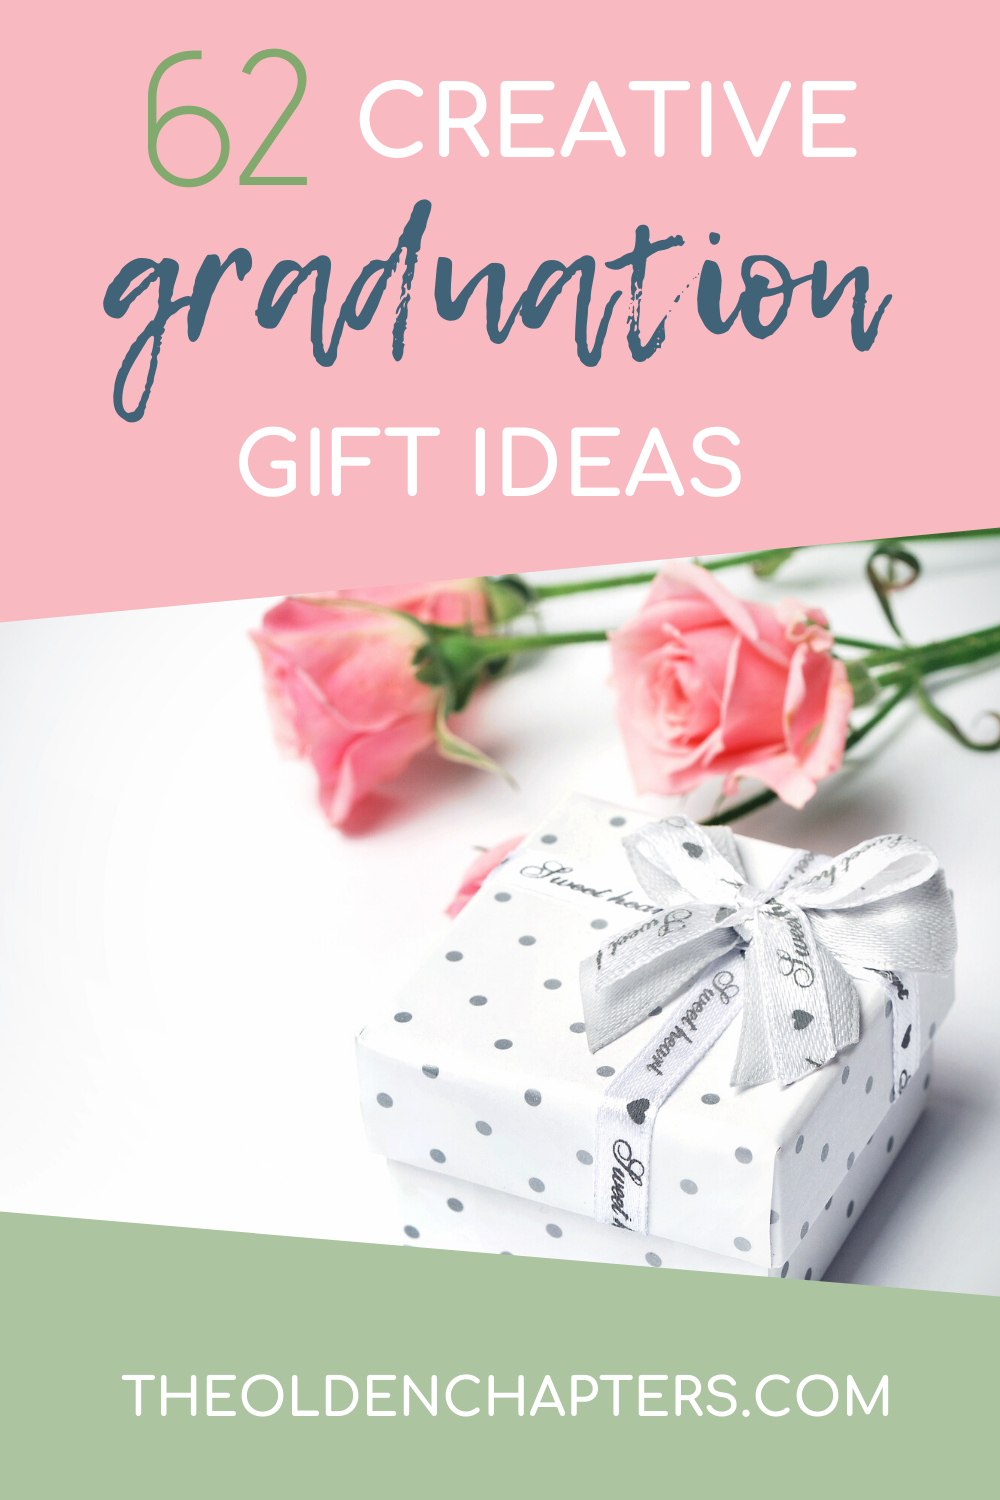 62 Perfect Graduation Gift Ideas for College and High School Students